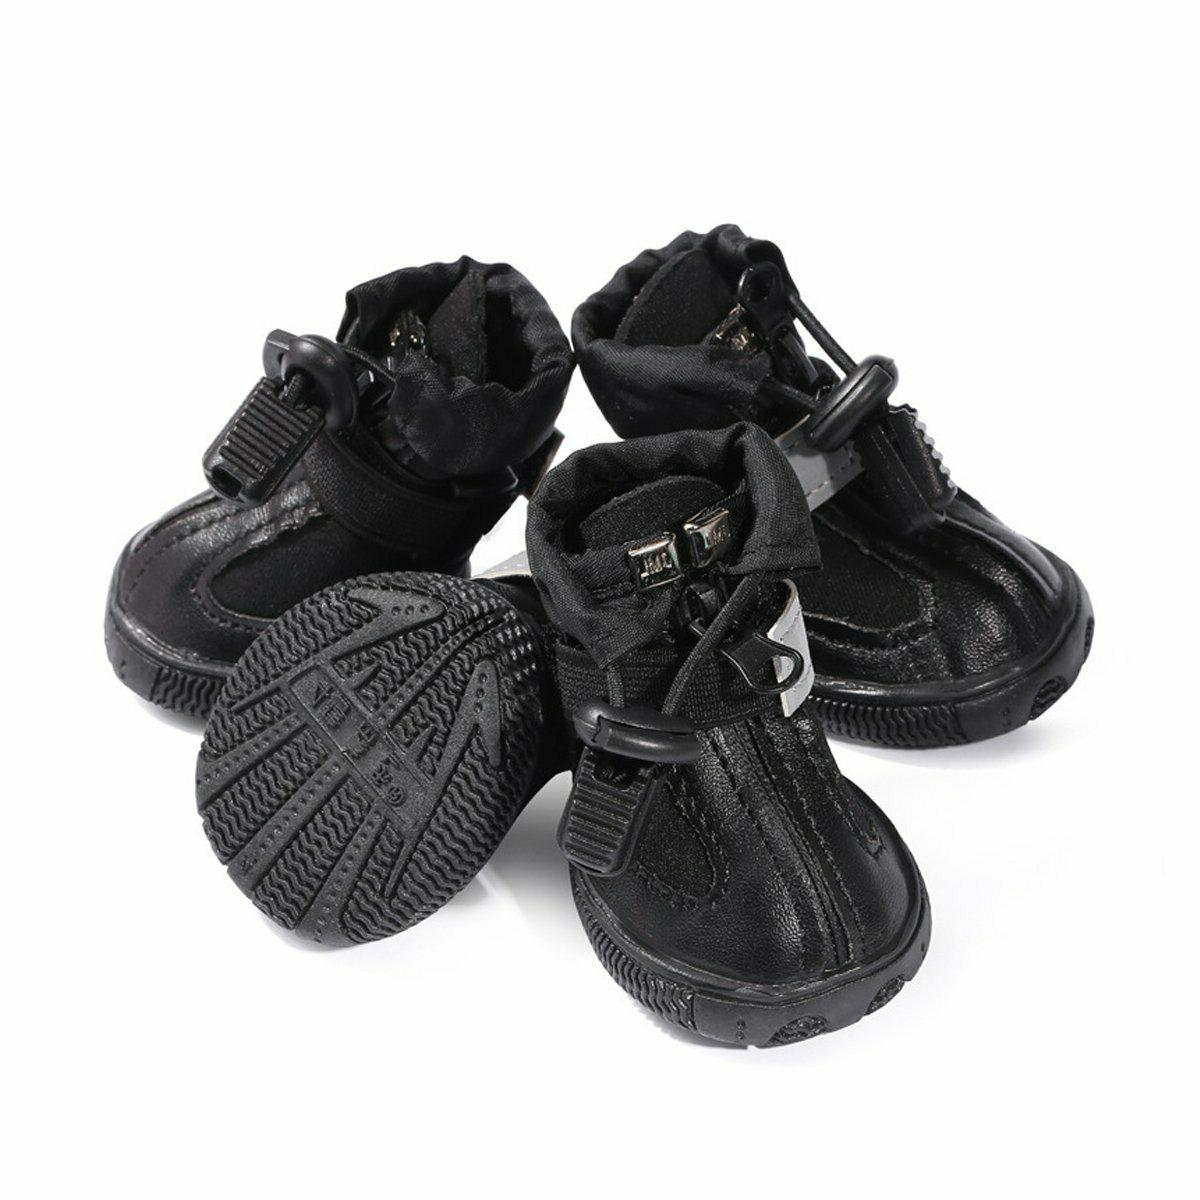 dog boots waterproof shoes for medium to